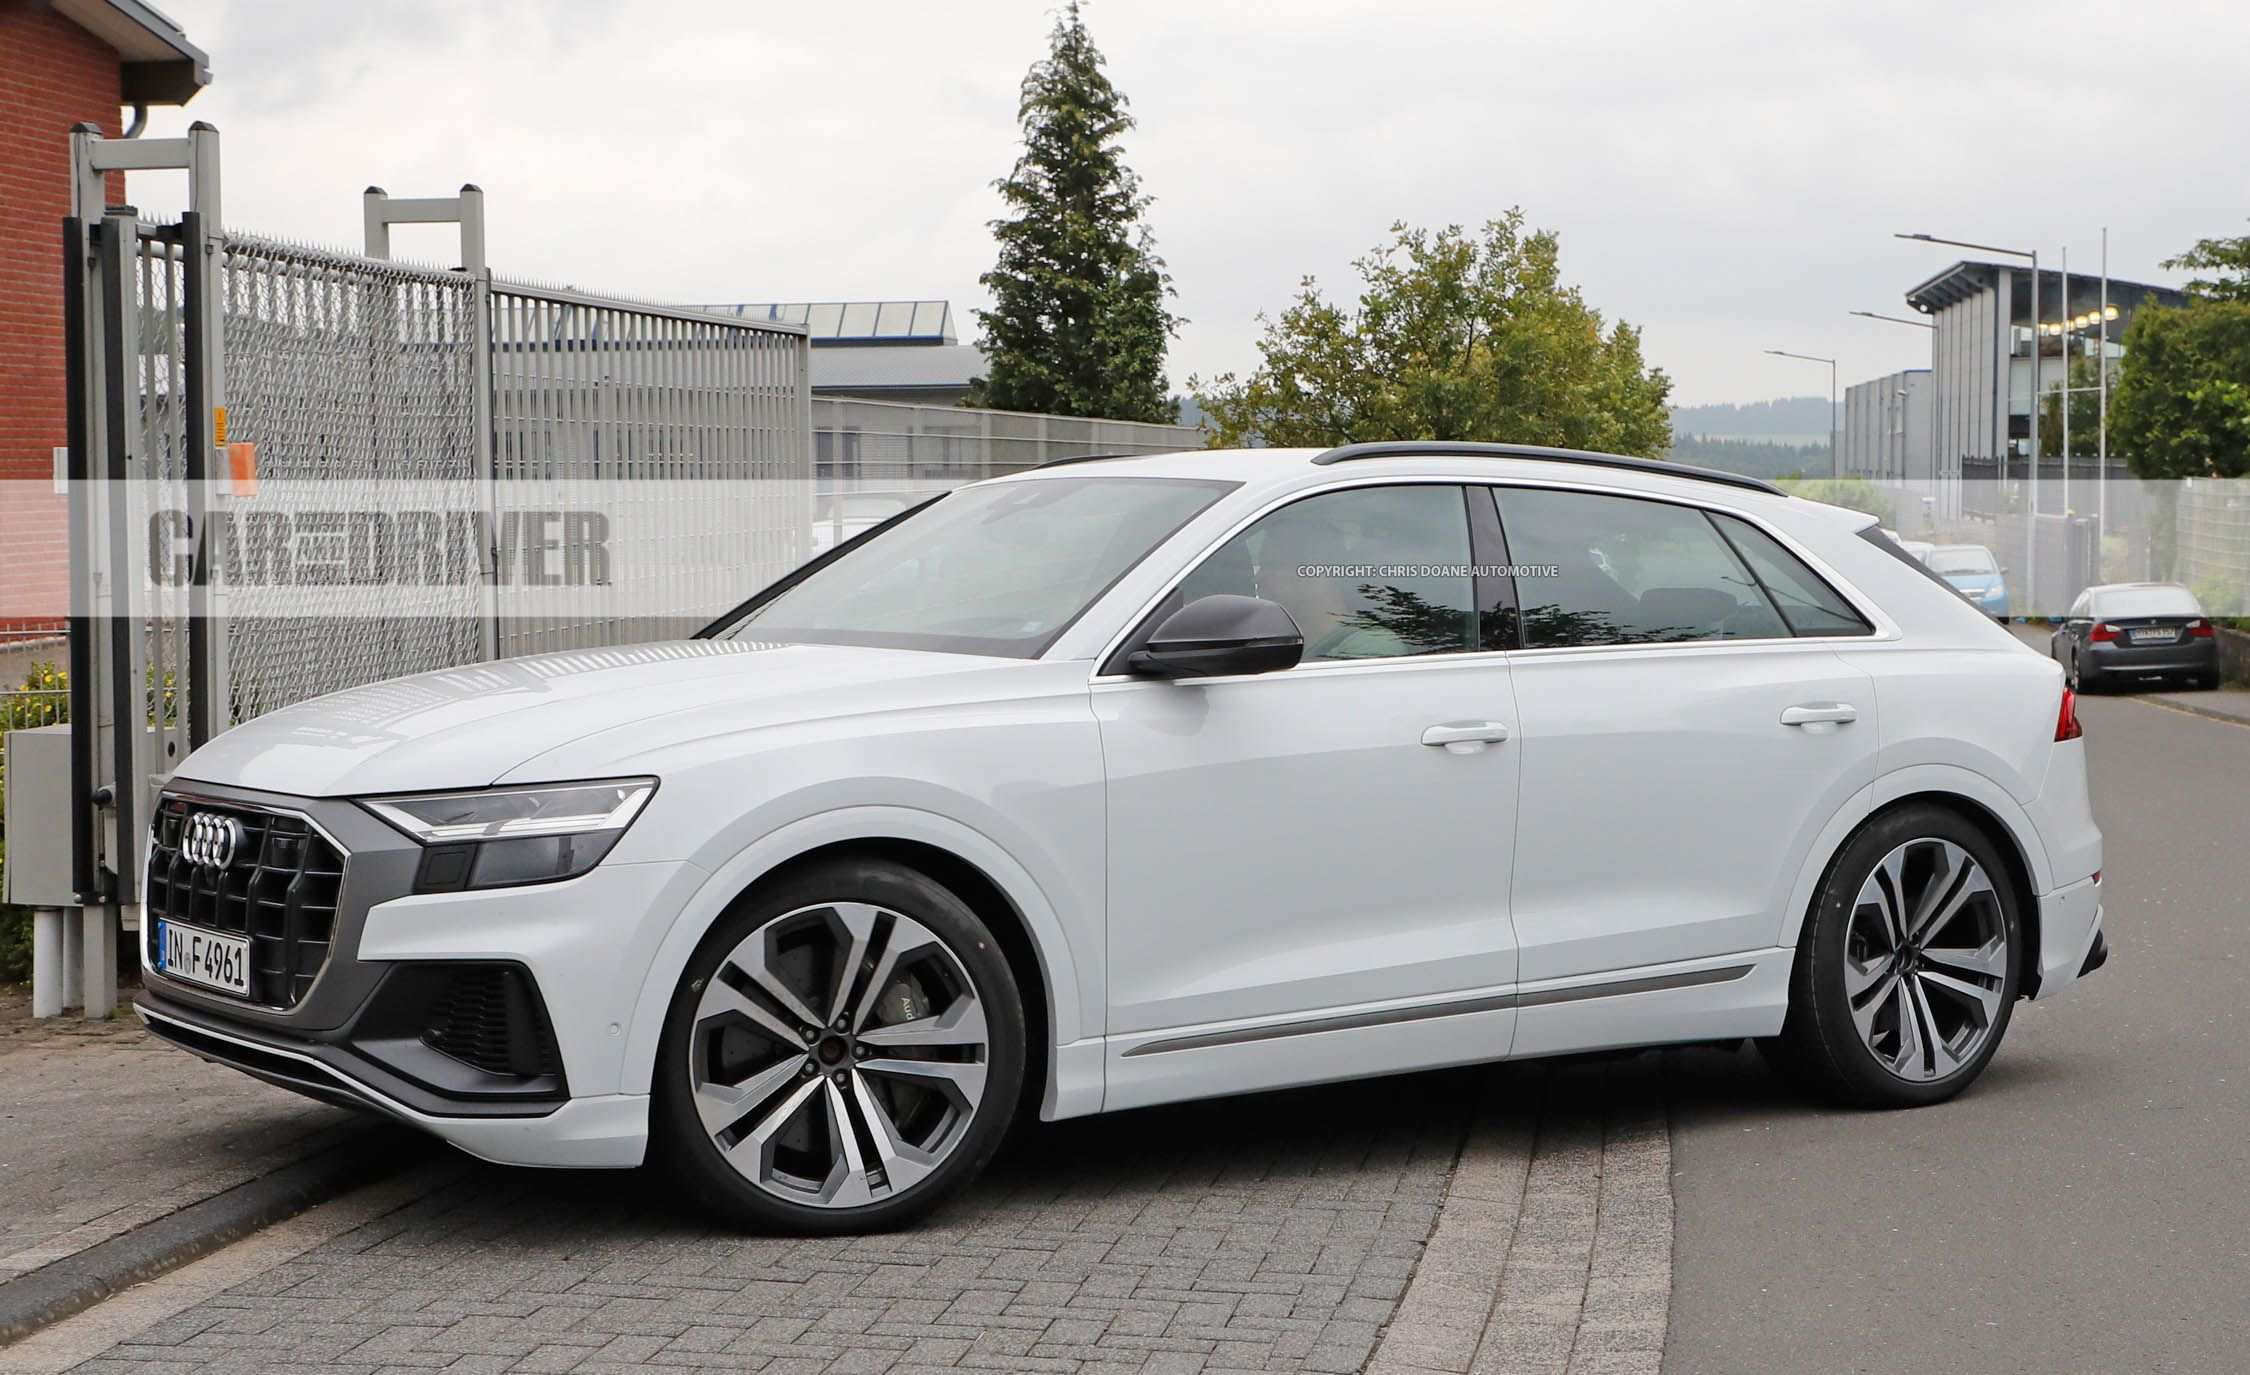 45 Best 2019 Audi Q7 Concept And Review